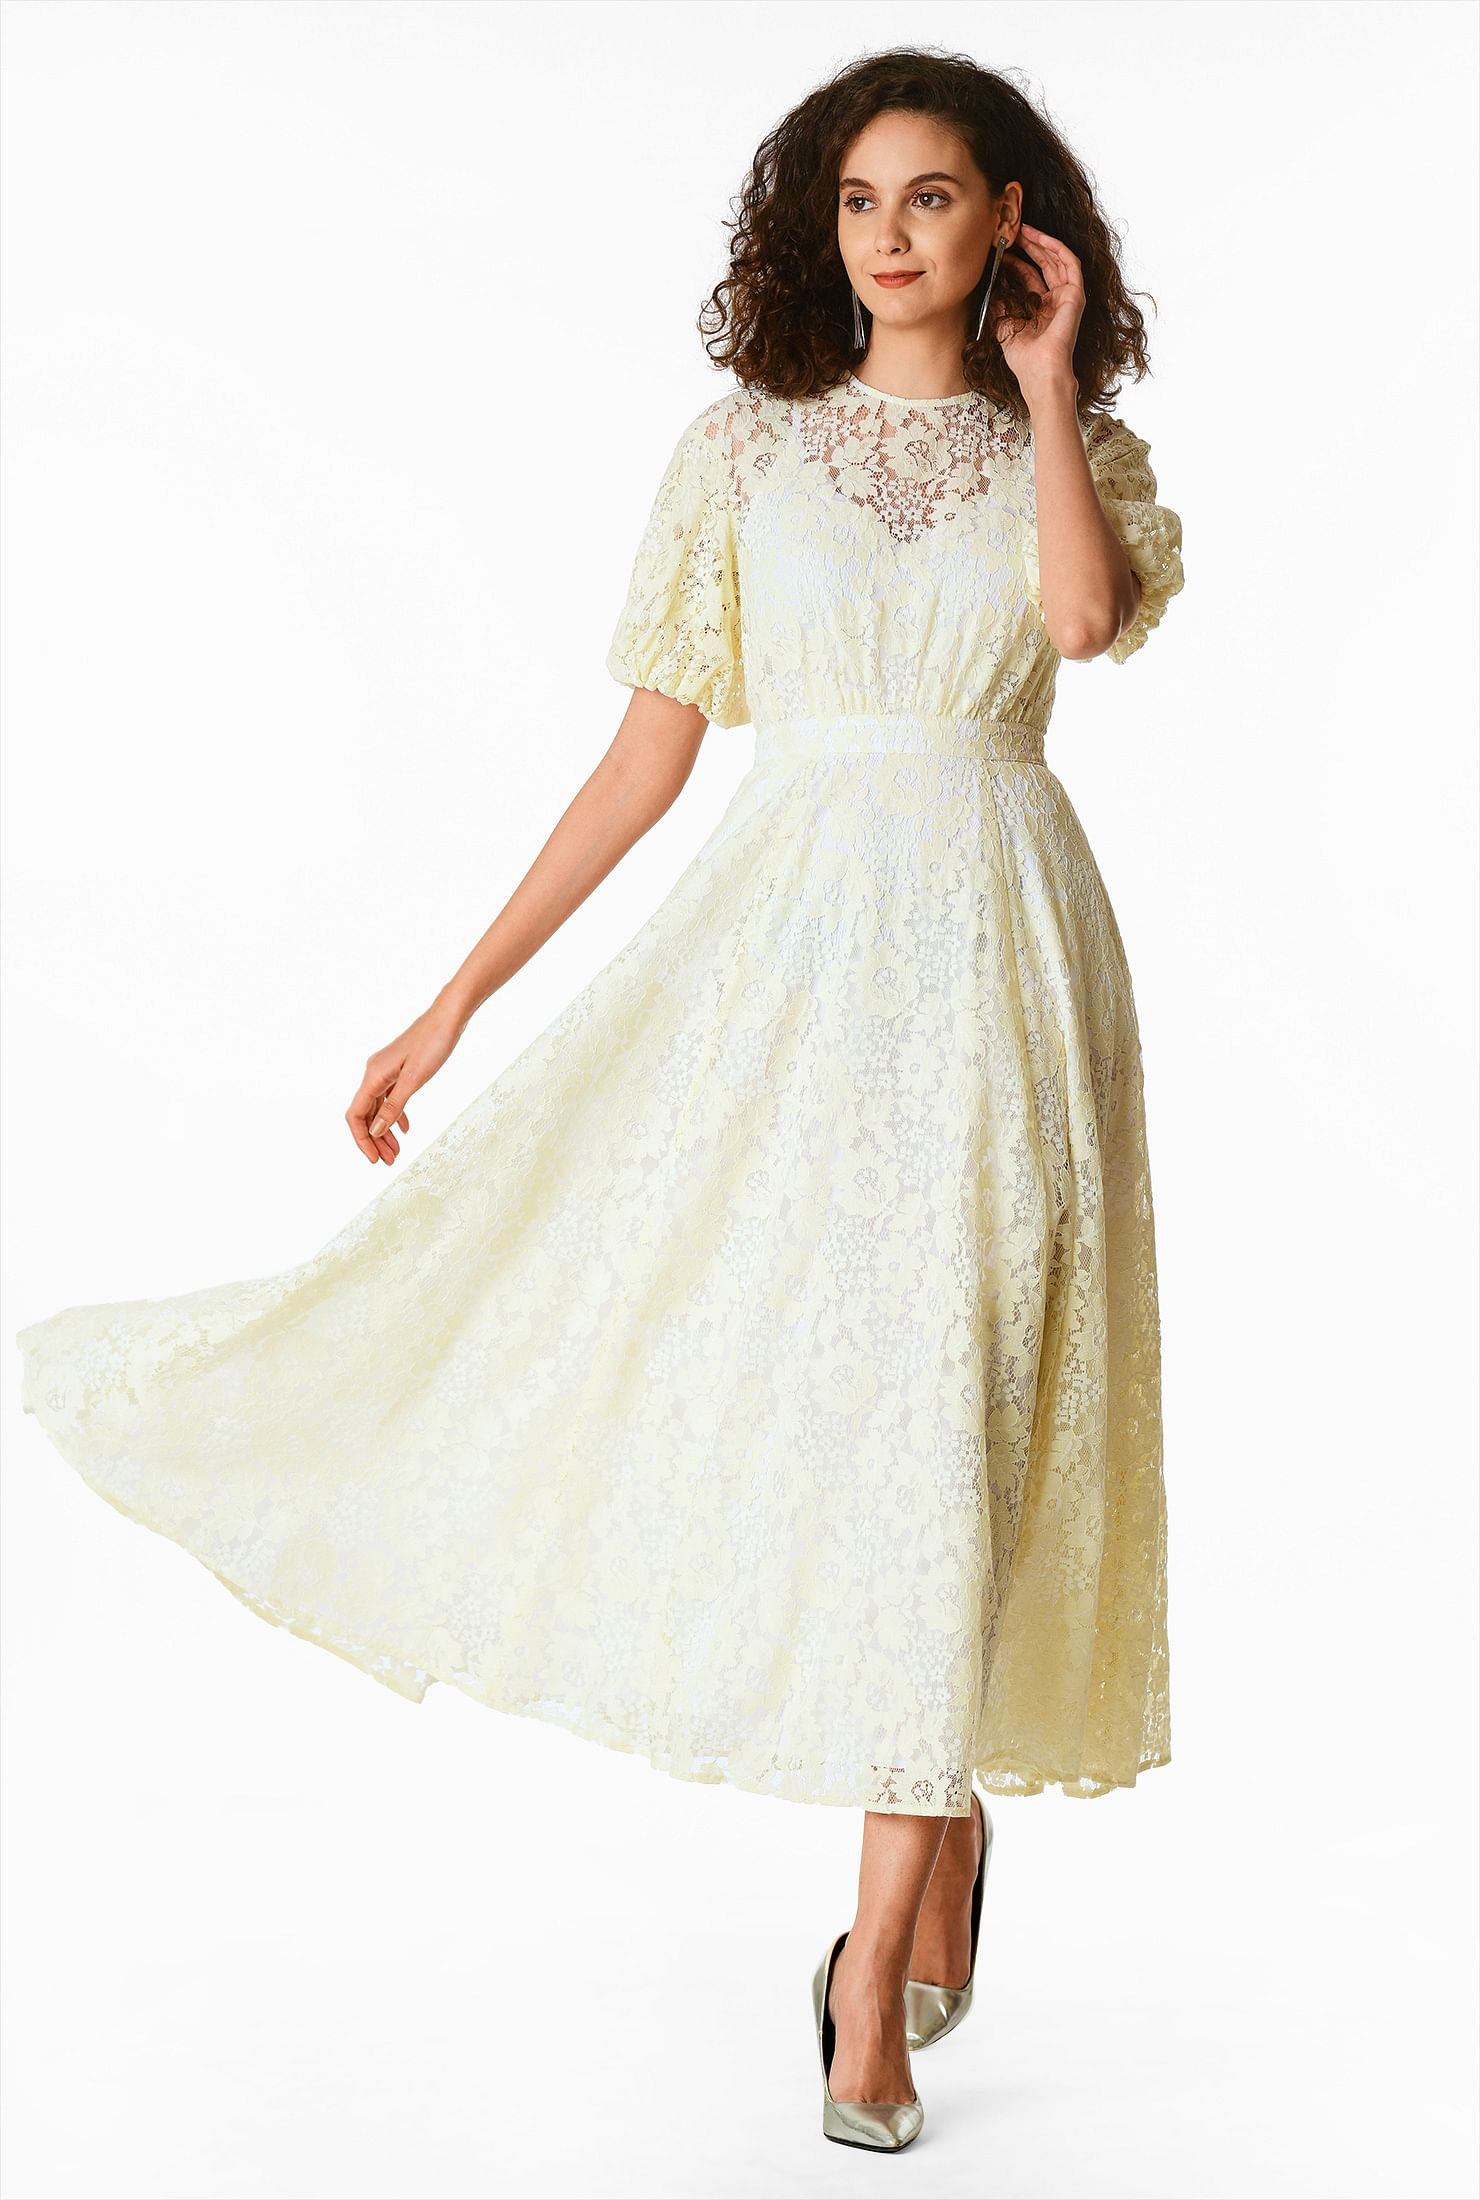 50s Wedding Dress, 1950s Style Wedding Dresses, Rockabilly Weddings Blouson sleeve floral lace dress $119.95 AT vintagedancer.com